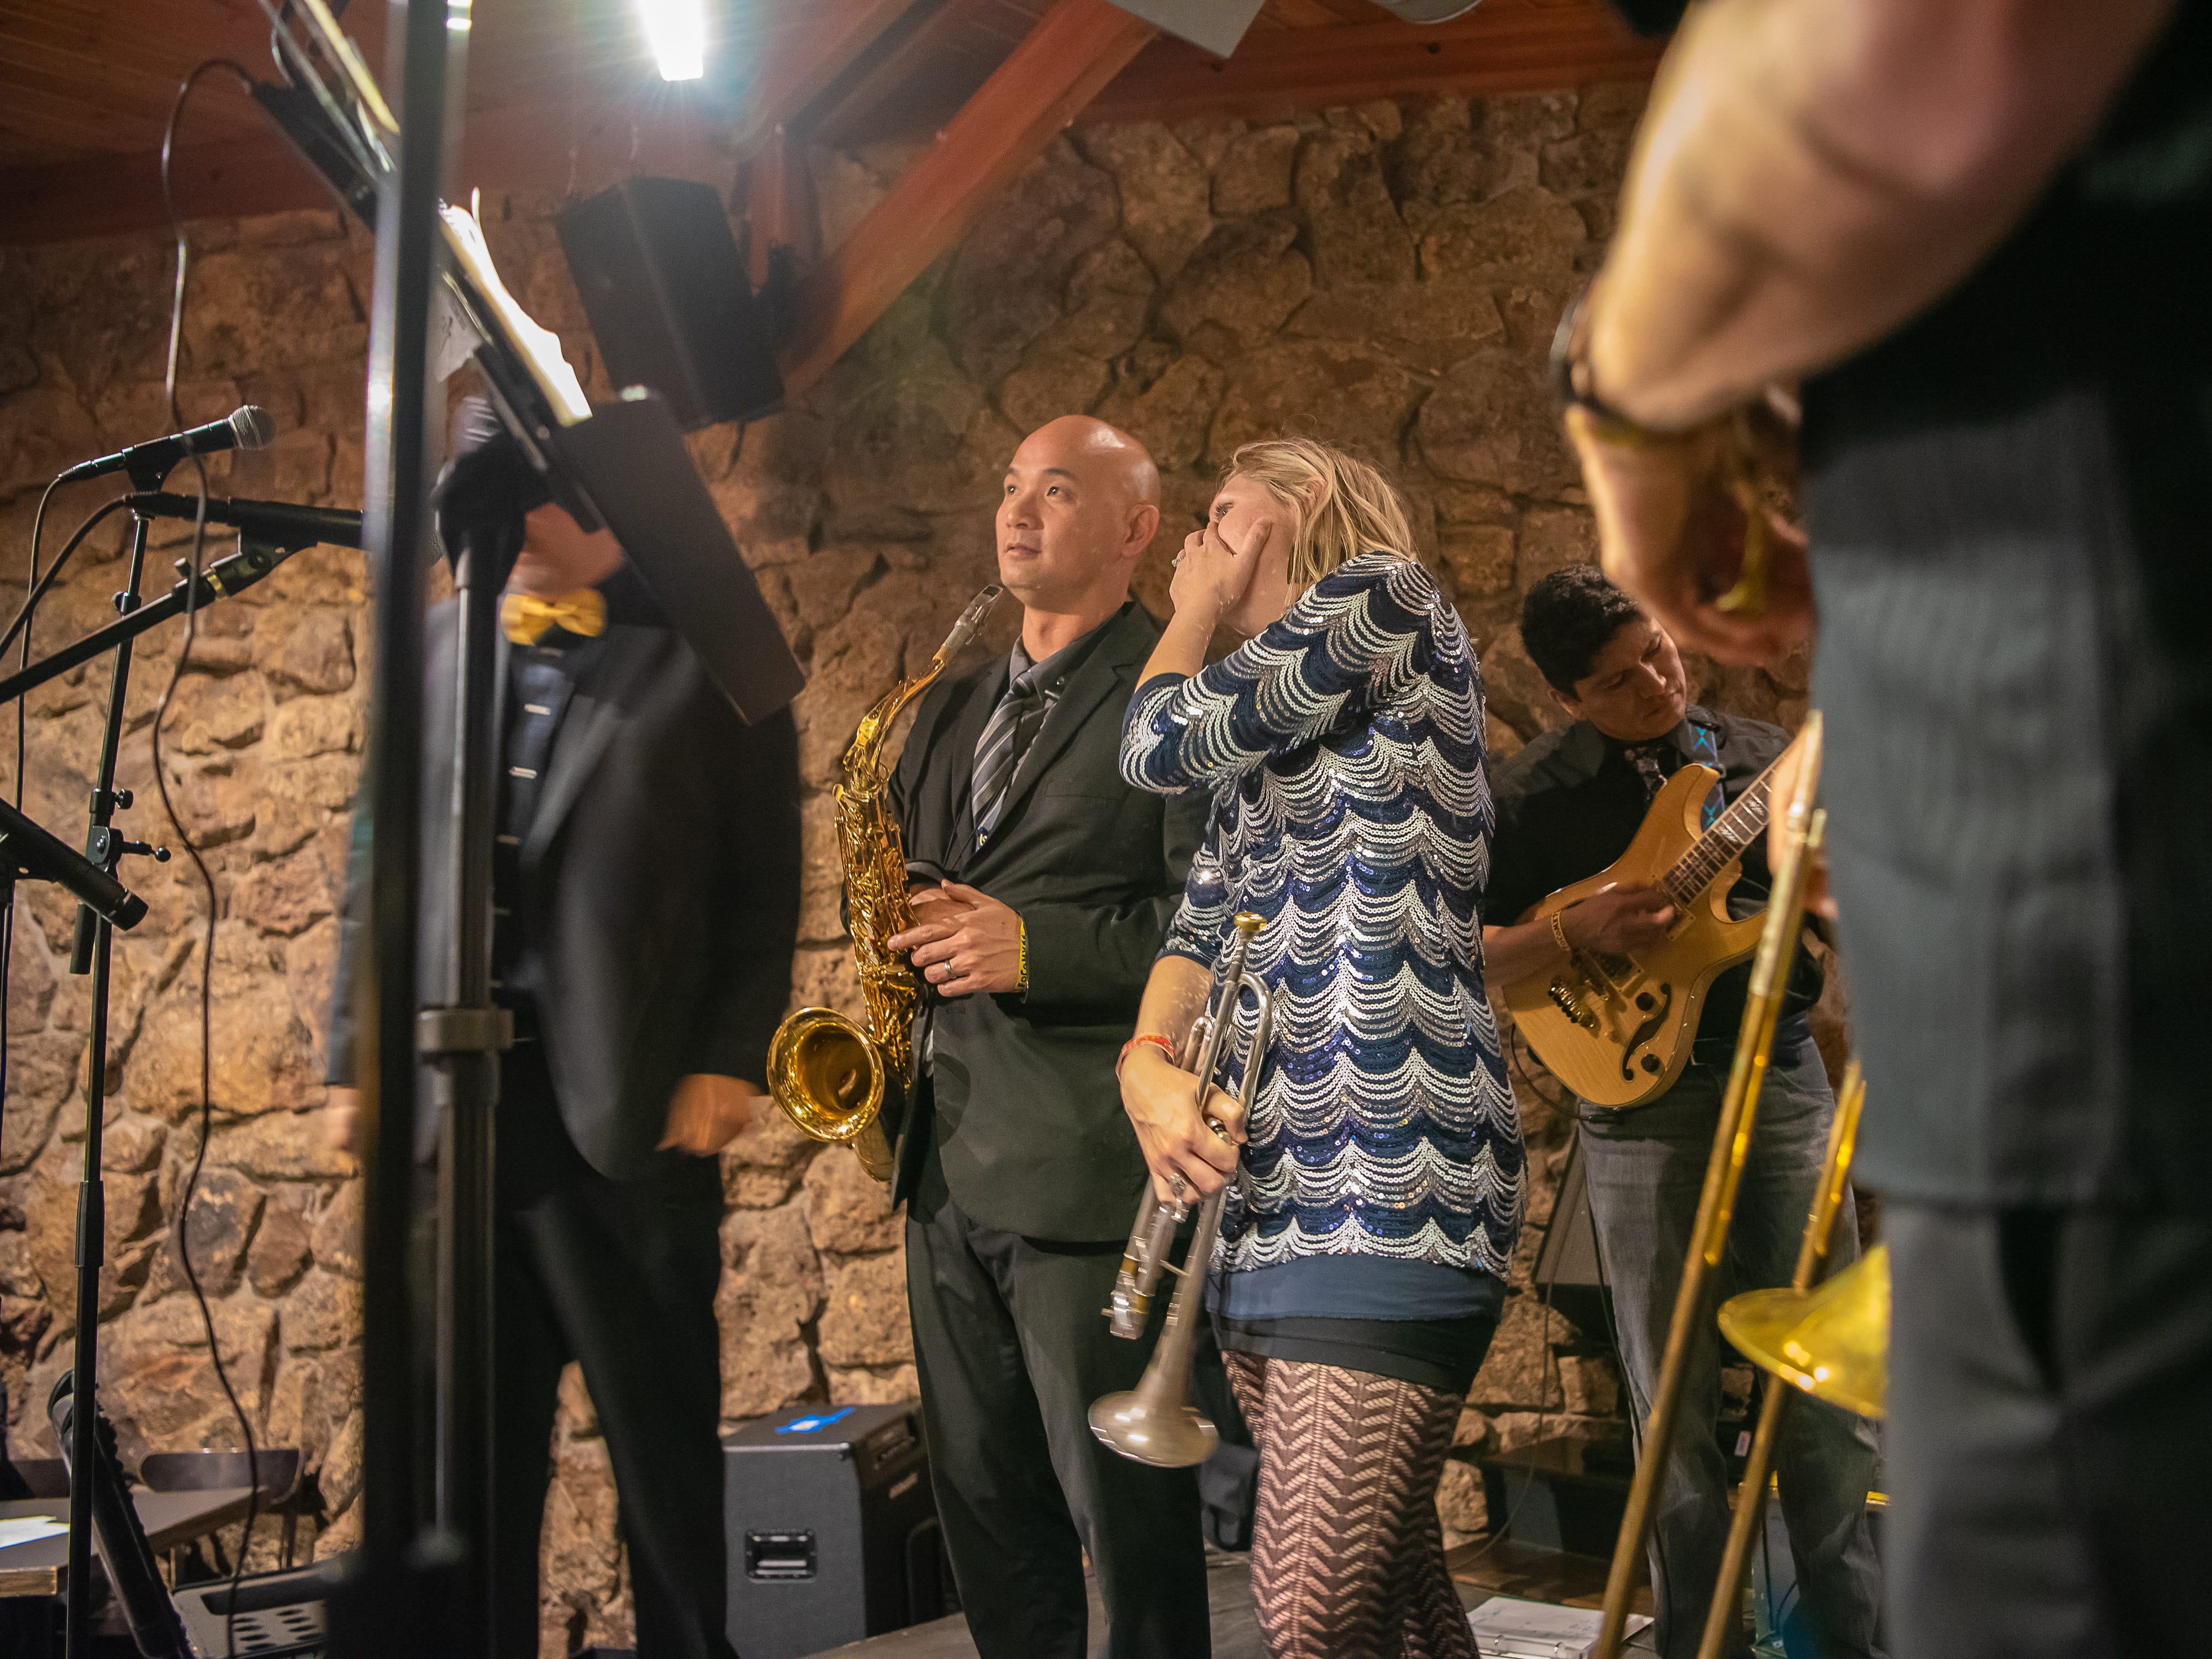 Members of Choice City Seven exchange a few words before a performance at The Mayor of Old Town during the FoCoMX XI music festival on Friday, April 26, 2019, in Fort Collins, Colo.